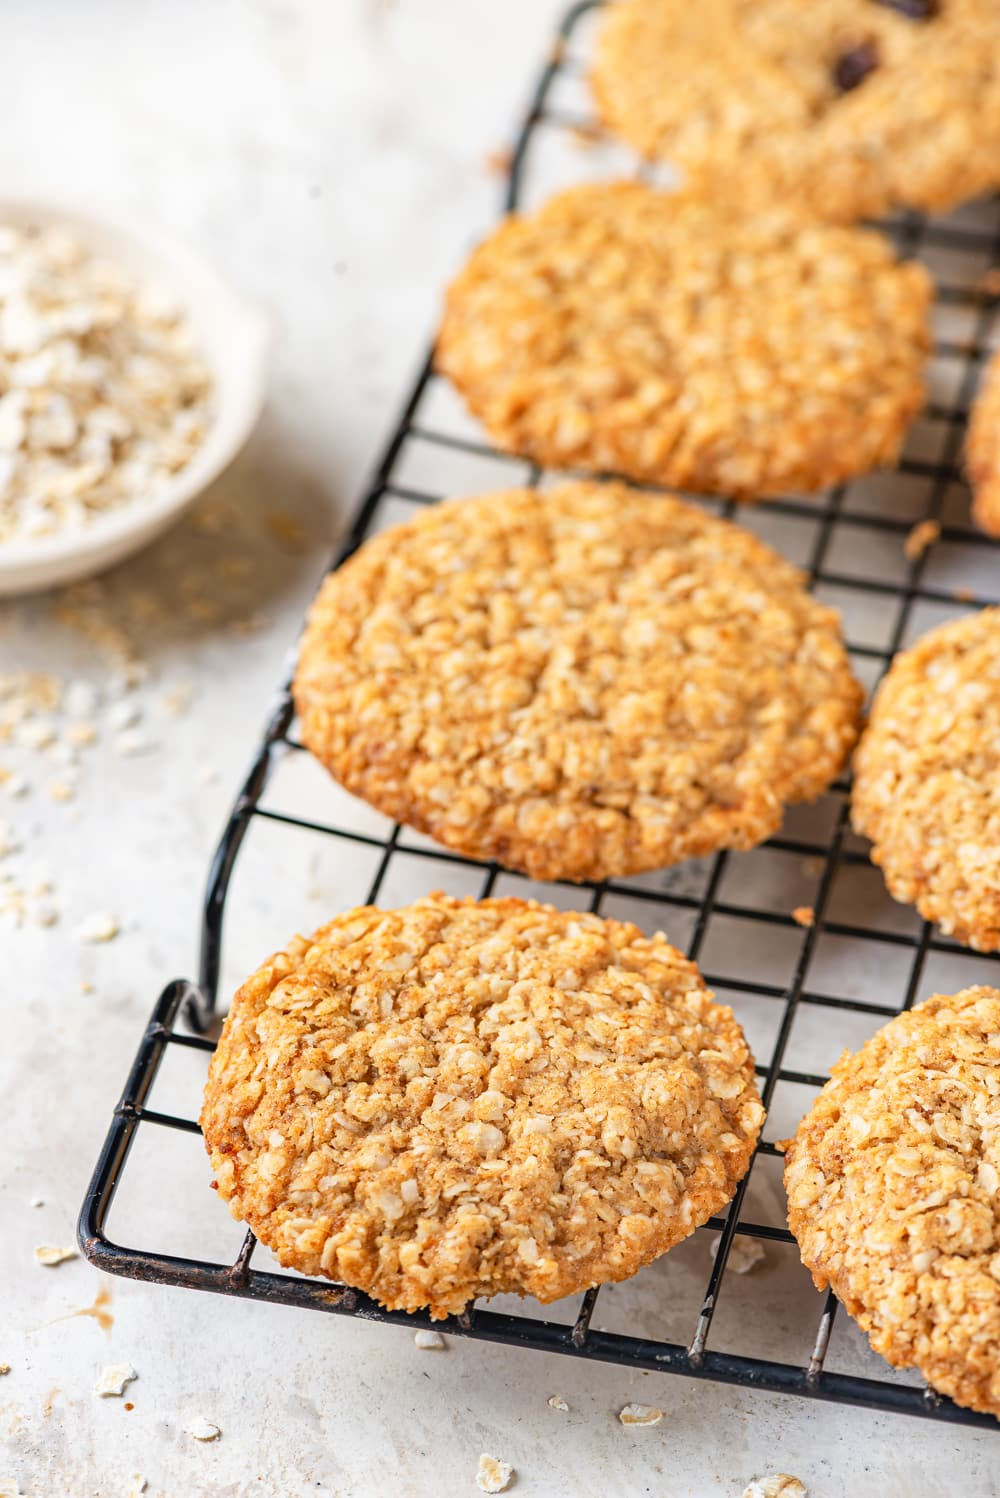 A row of four vegan oatmeal cookies lined up on a black wire rack. A small white bowl of oats is to the left of the wire rack. Everything is set on a white counter.